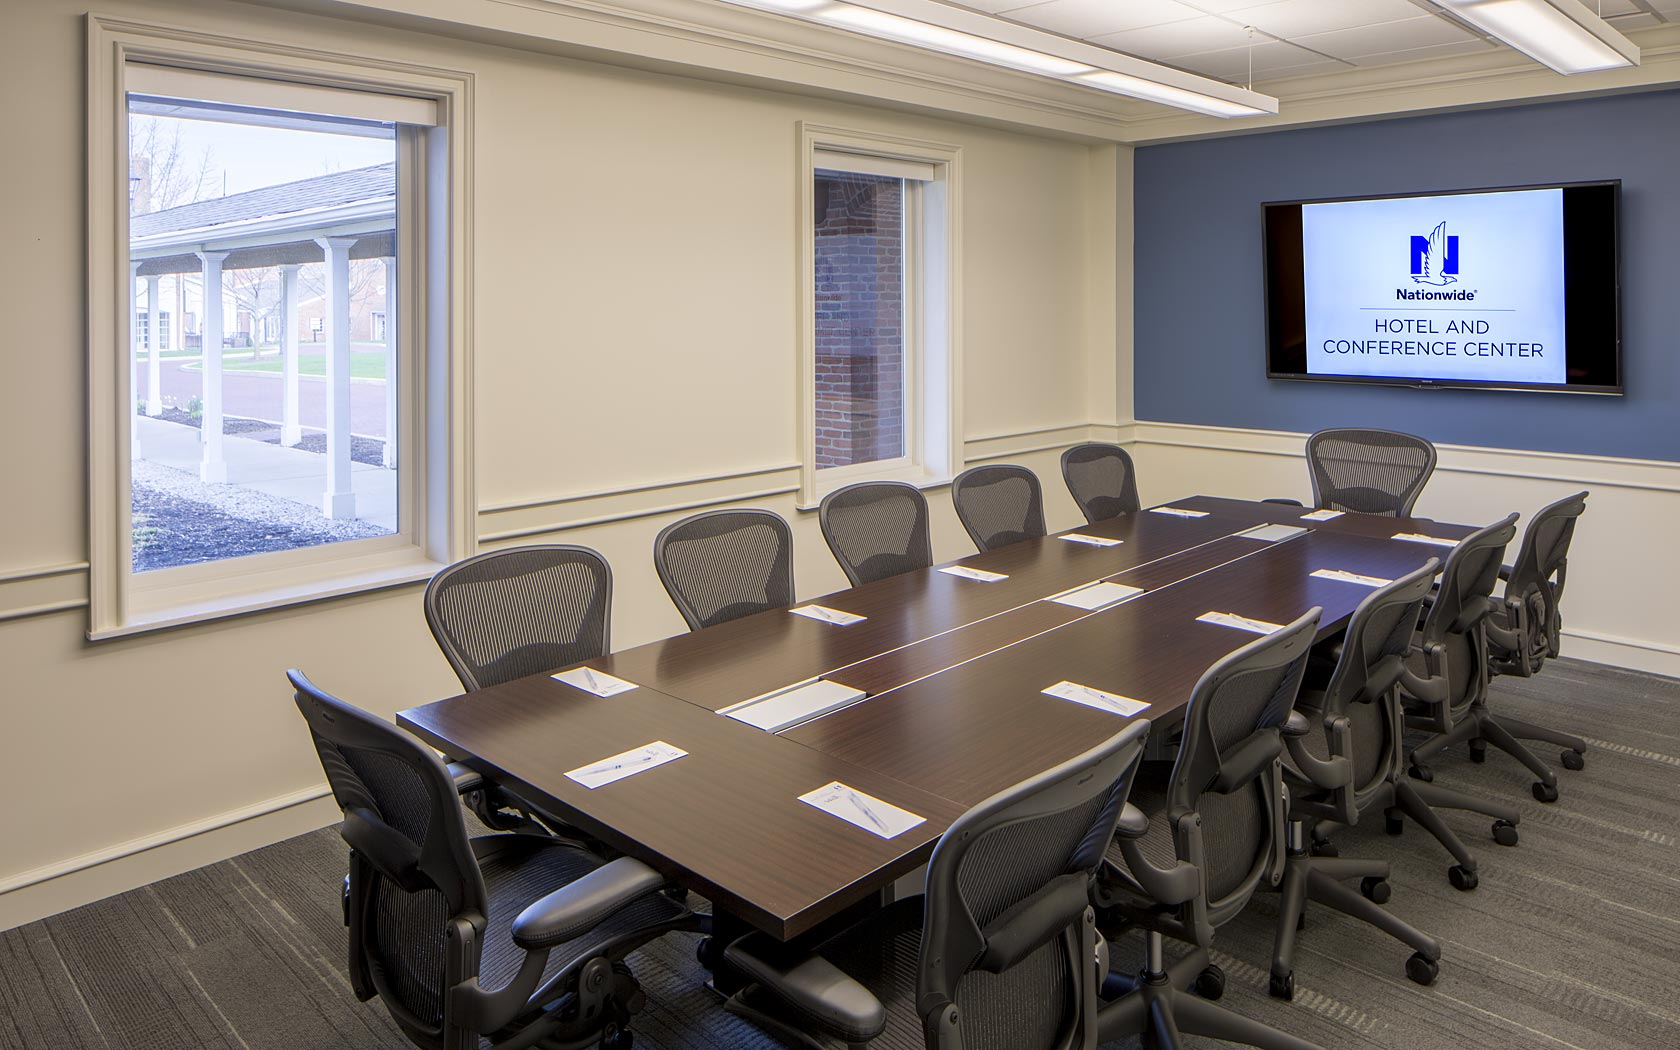 Nationwide Hotel Conference Room